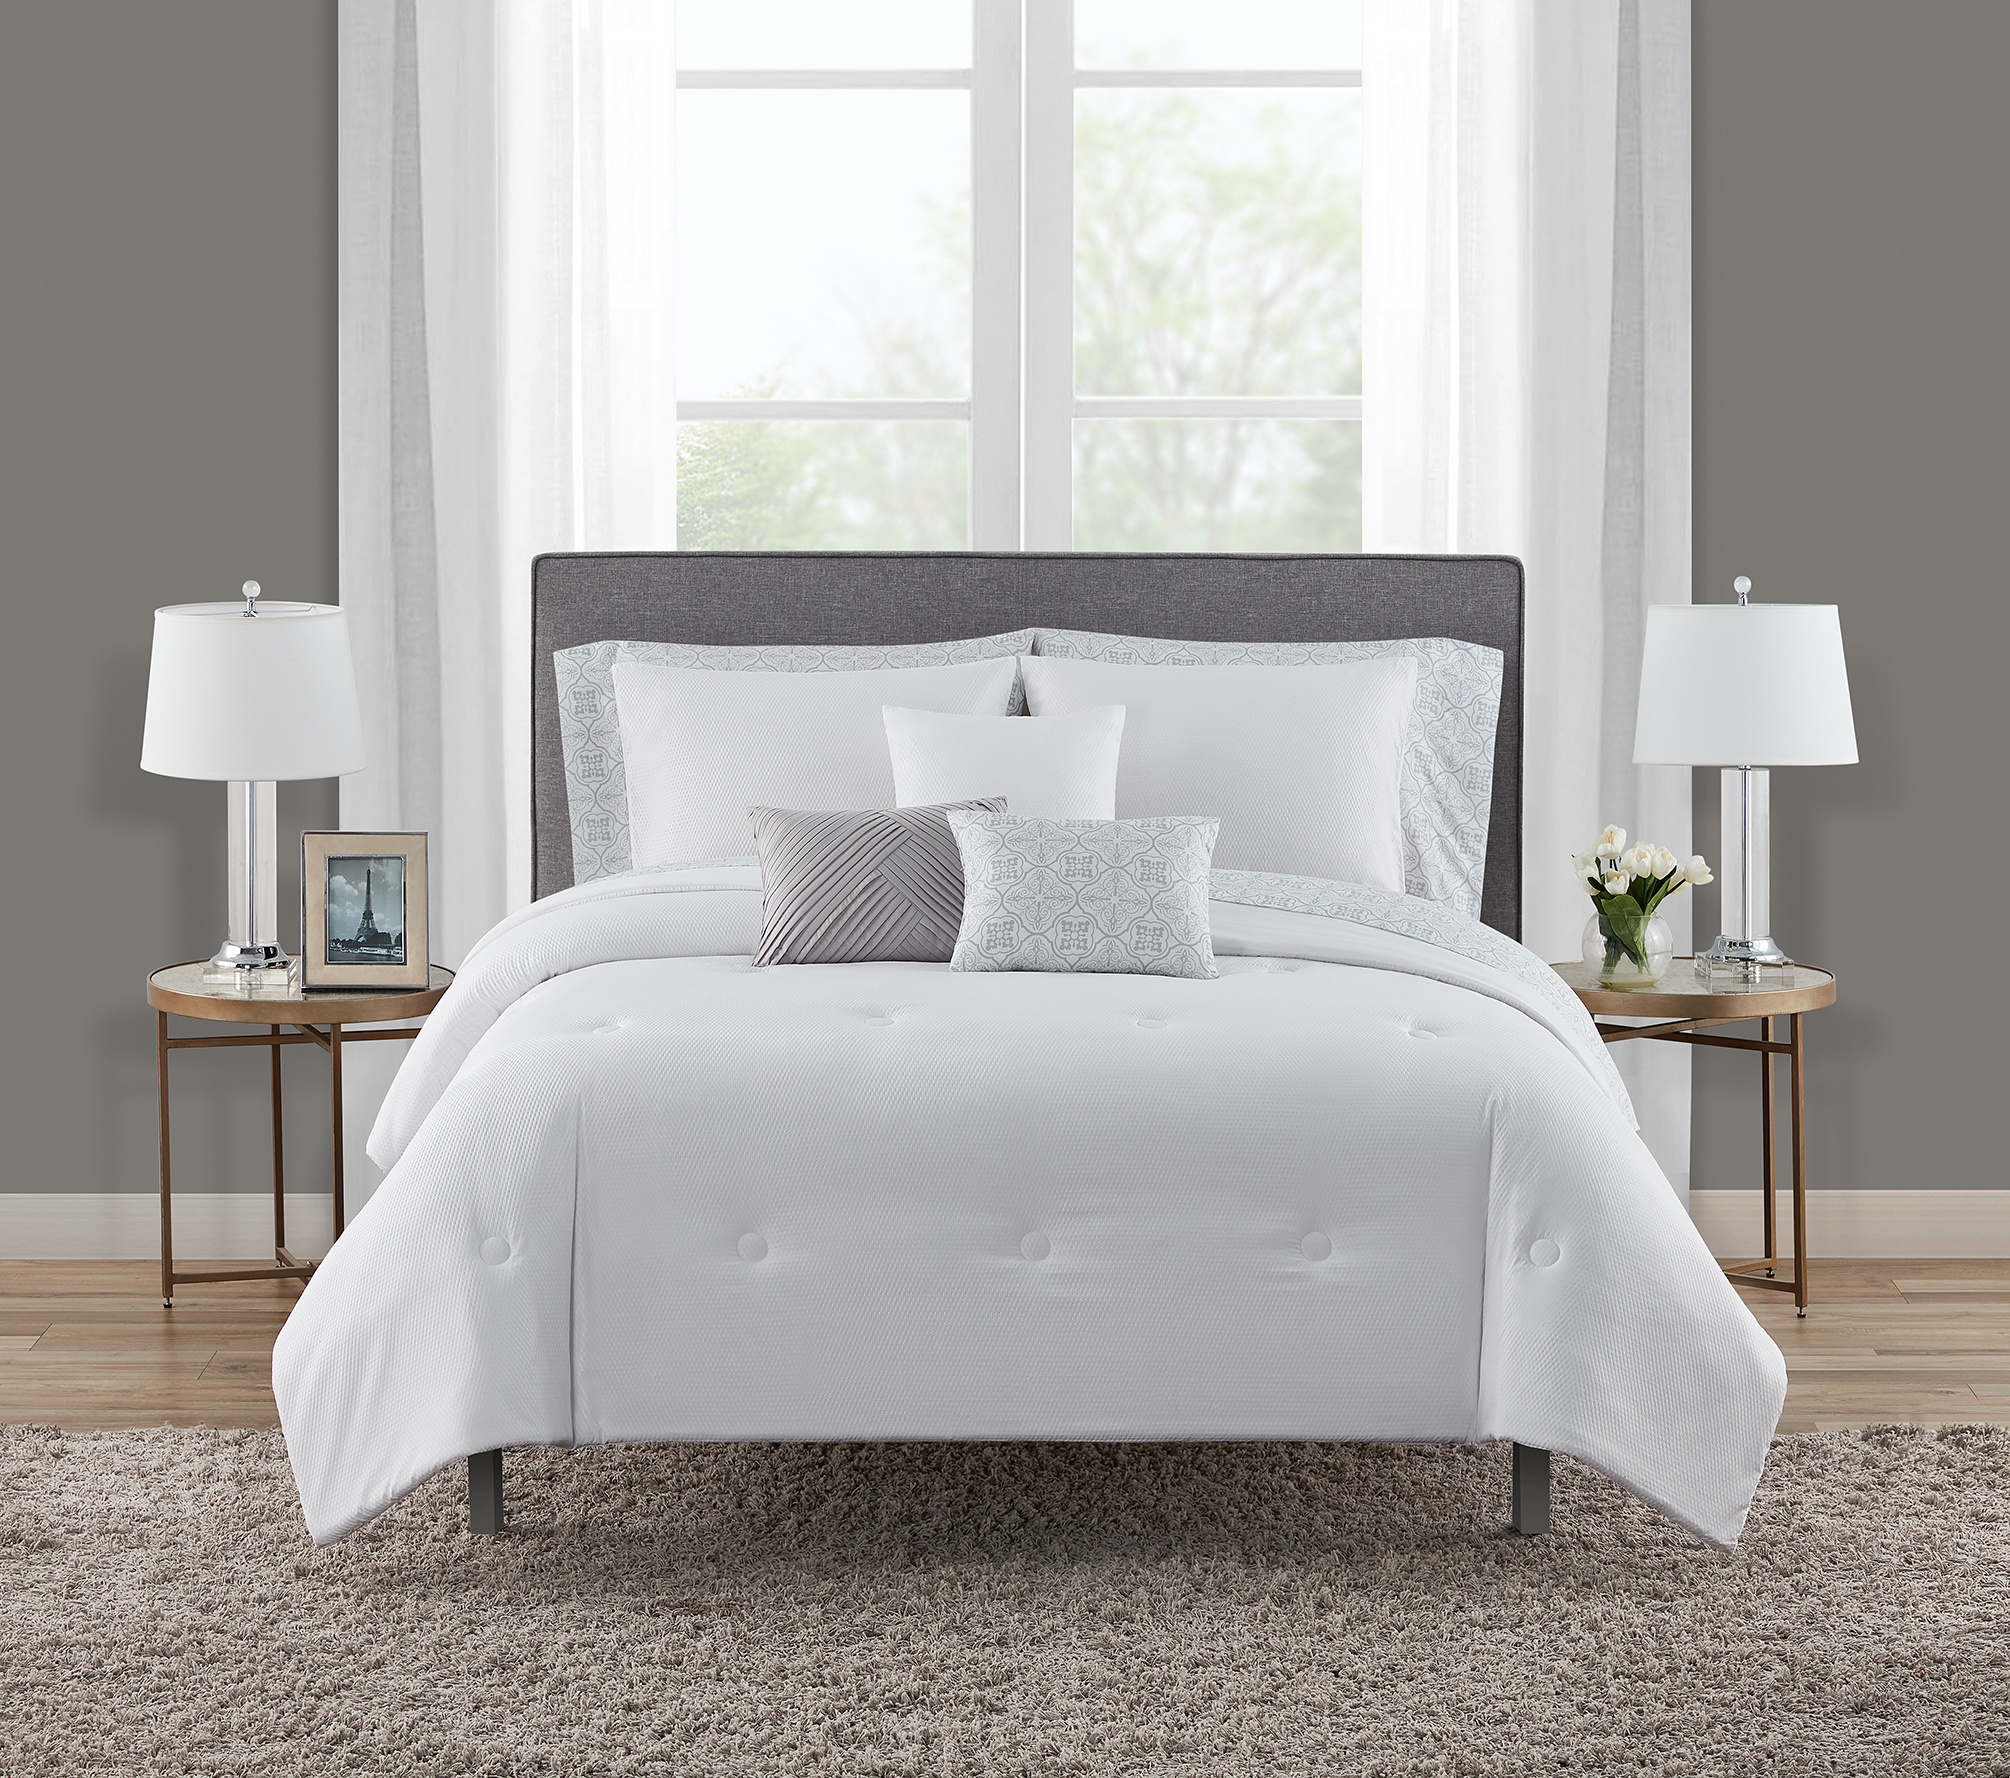 Queen Pillows Mainstays Gray Textured 10-Piece Bed-in-a-Bag Bedding Set